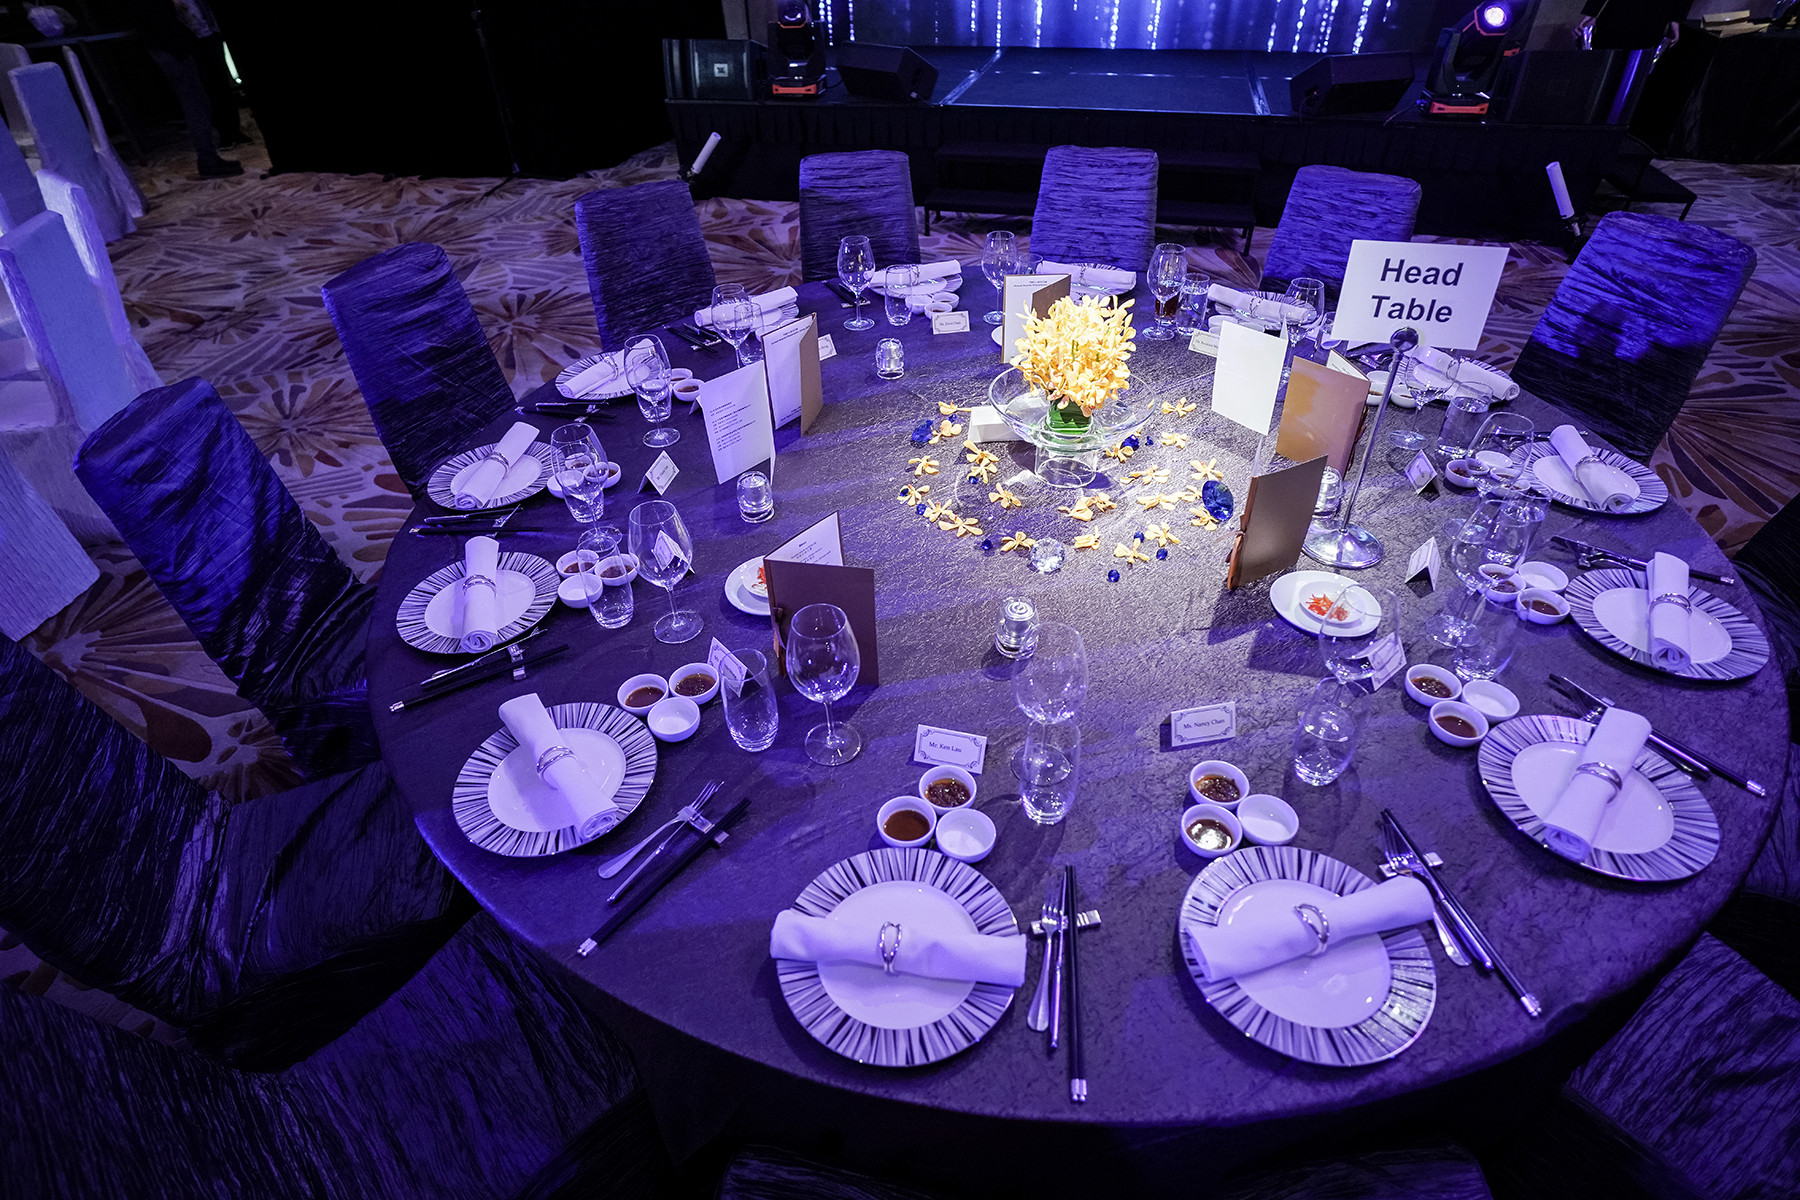 FWD x BOCOM annual dinner round table setup with purple ambient lighting